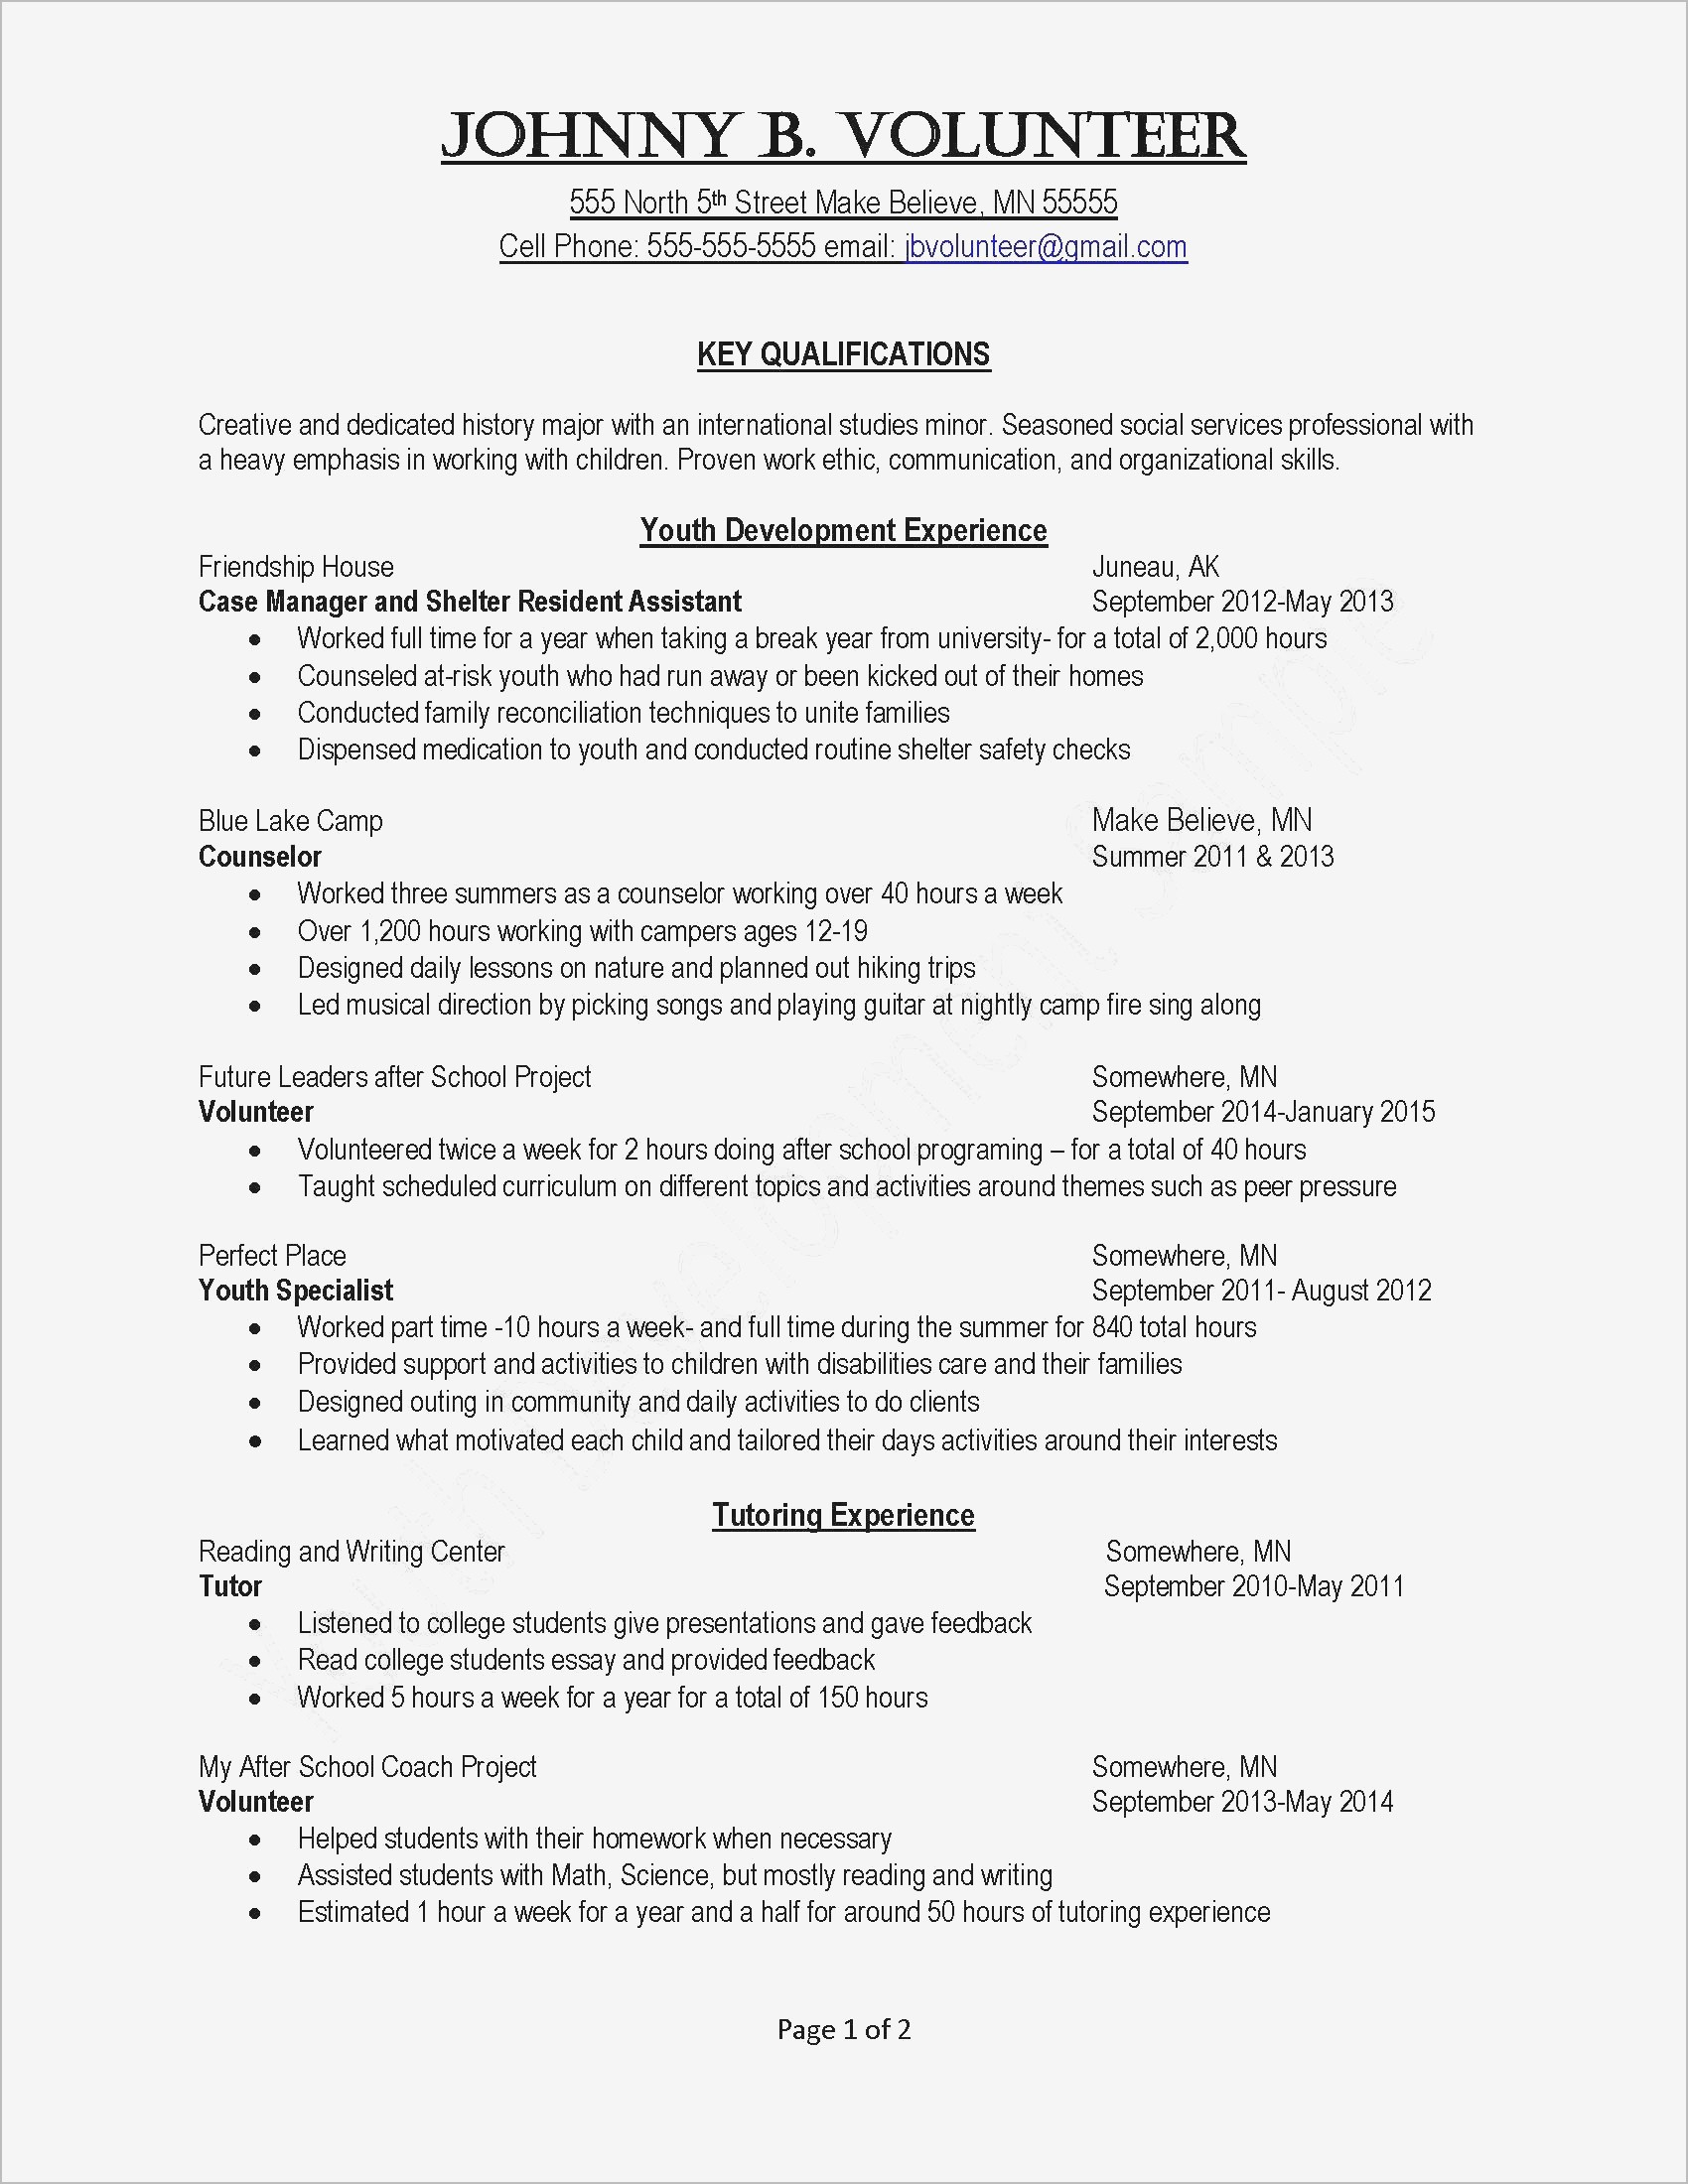 Pdf Cover Letter Template - Writing A Cover Letter for A Resume Pdf format